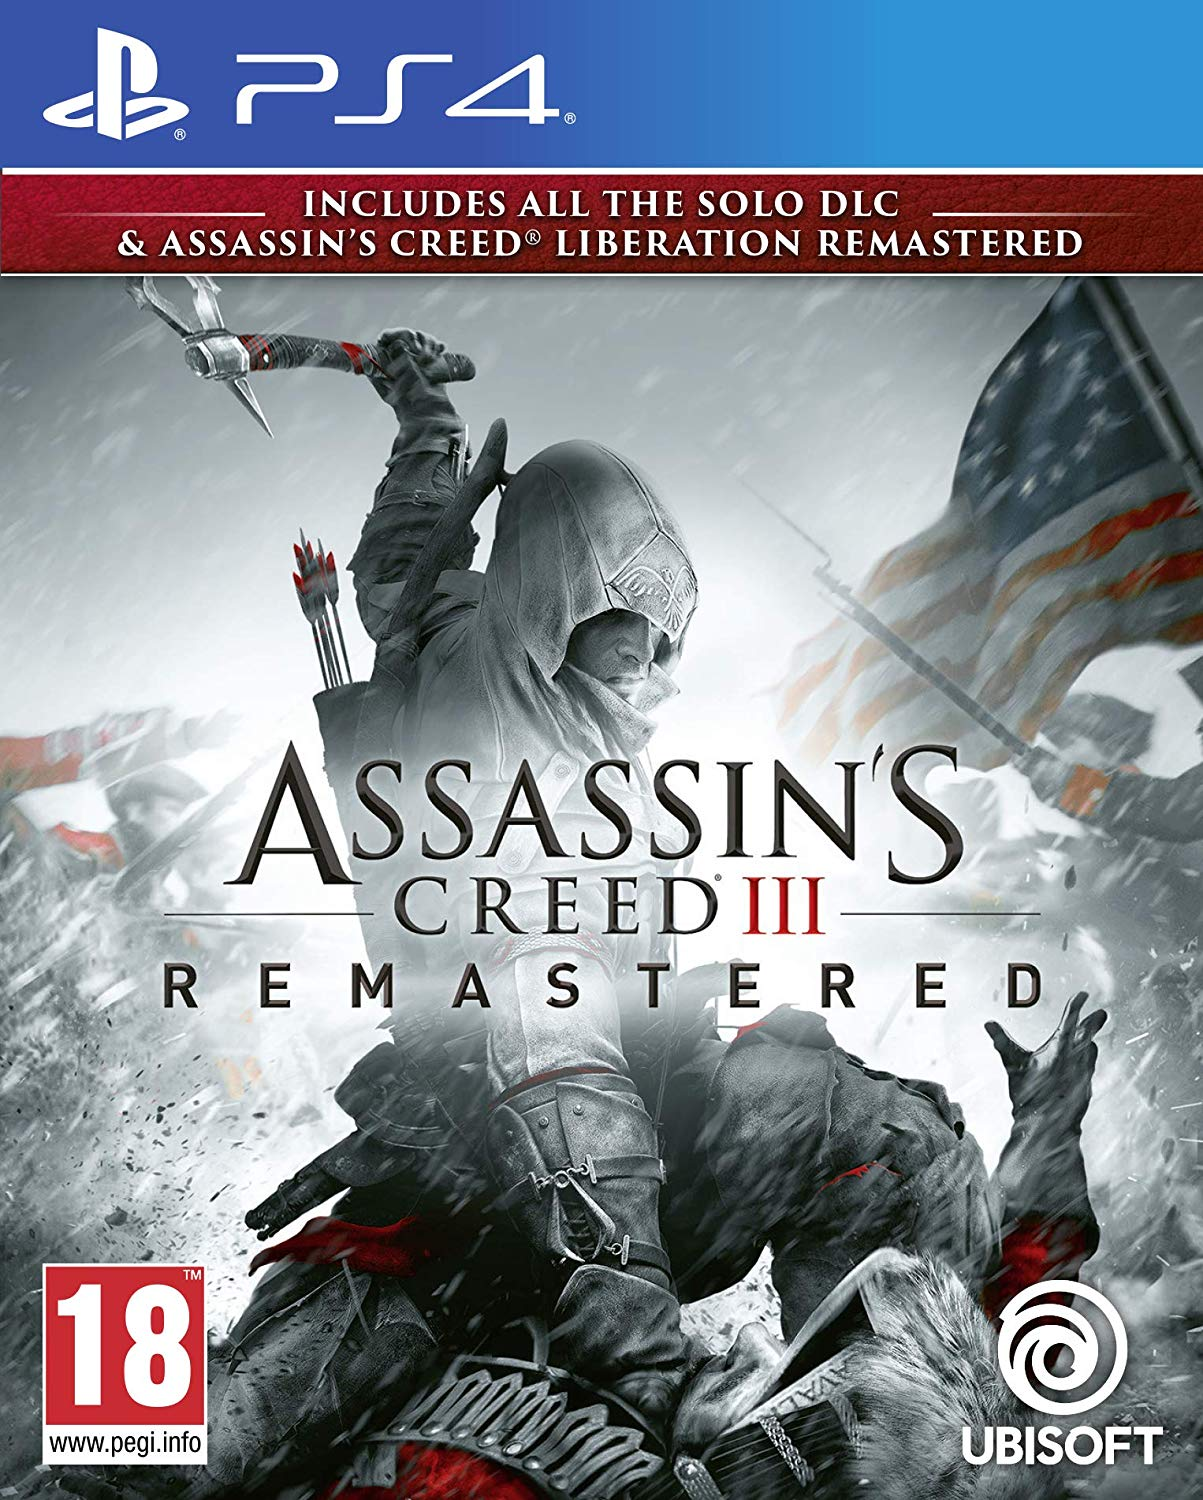 Assassin's Creed III – Remastered